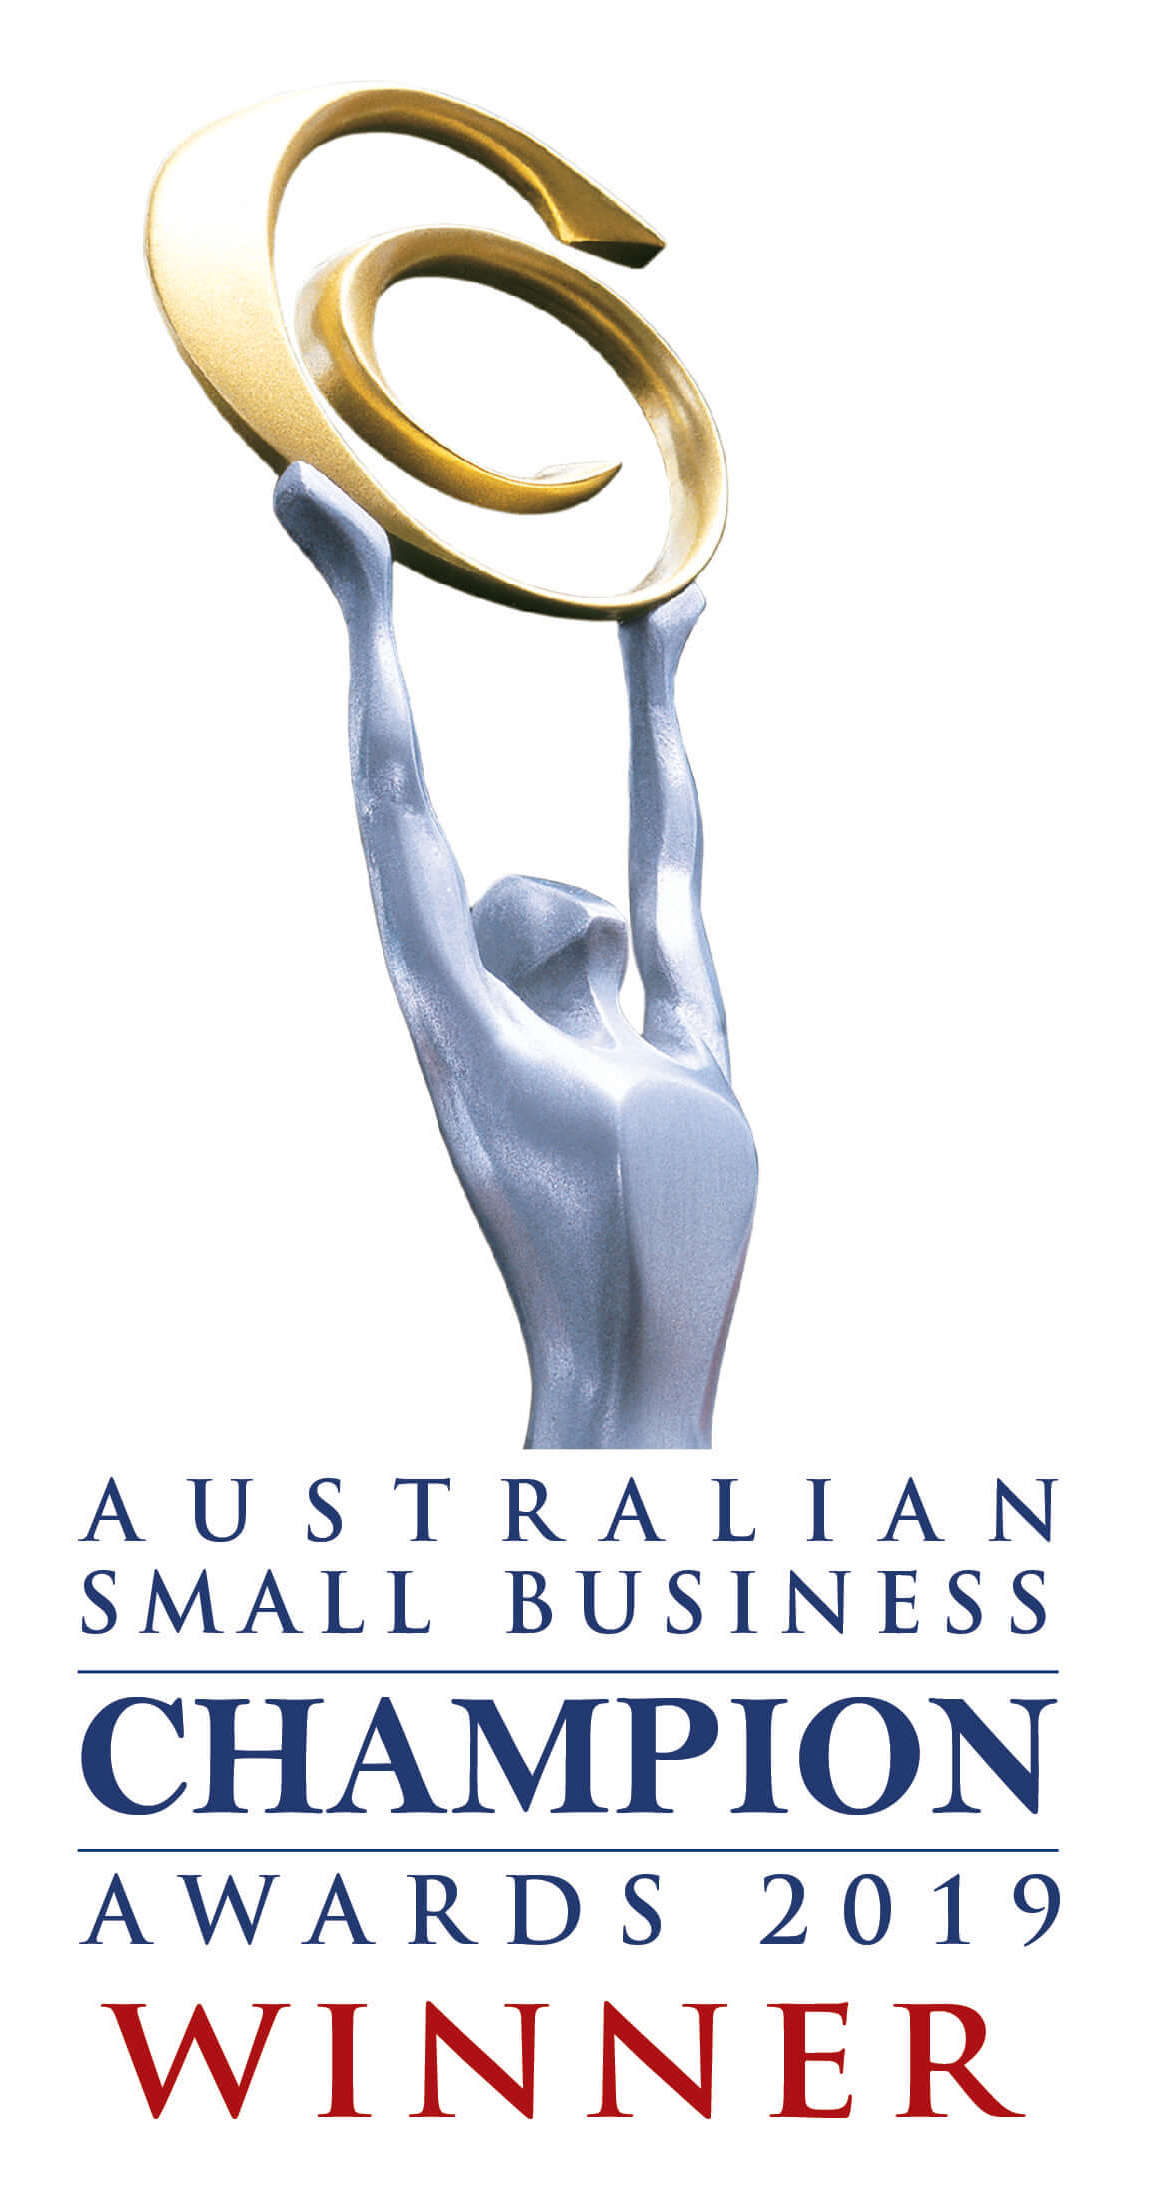 Small Business Award Winner 2019